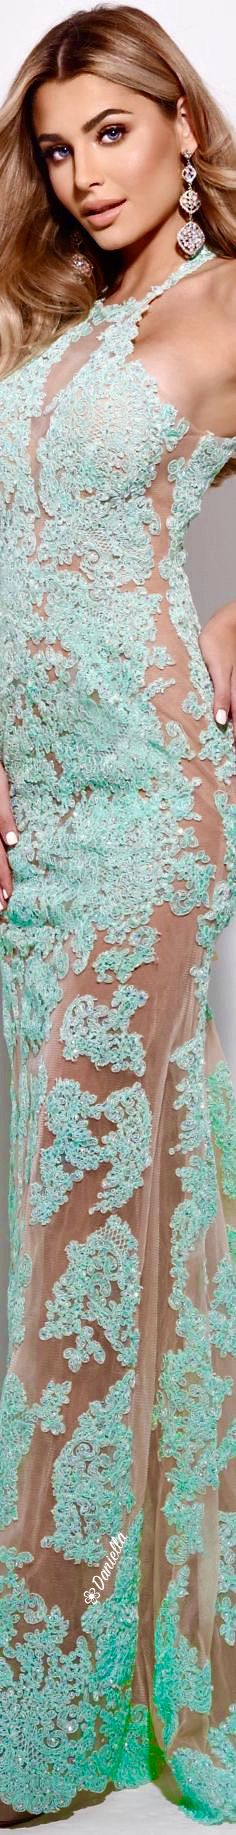 Mint Mojito, Supportive Friends, Mint Dress, Mint Blue, Love You All, Classy Women, Elegant Woman, Soft Colors, Shades Of Green